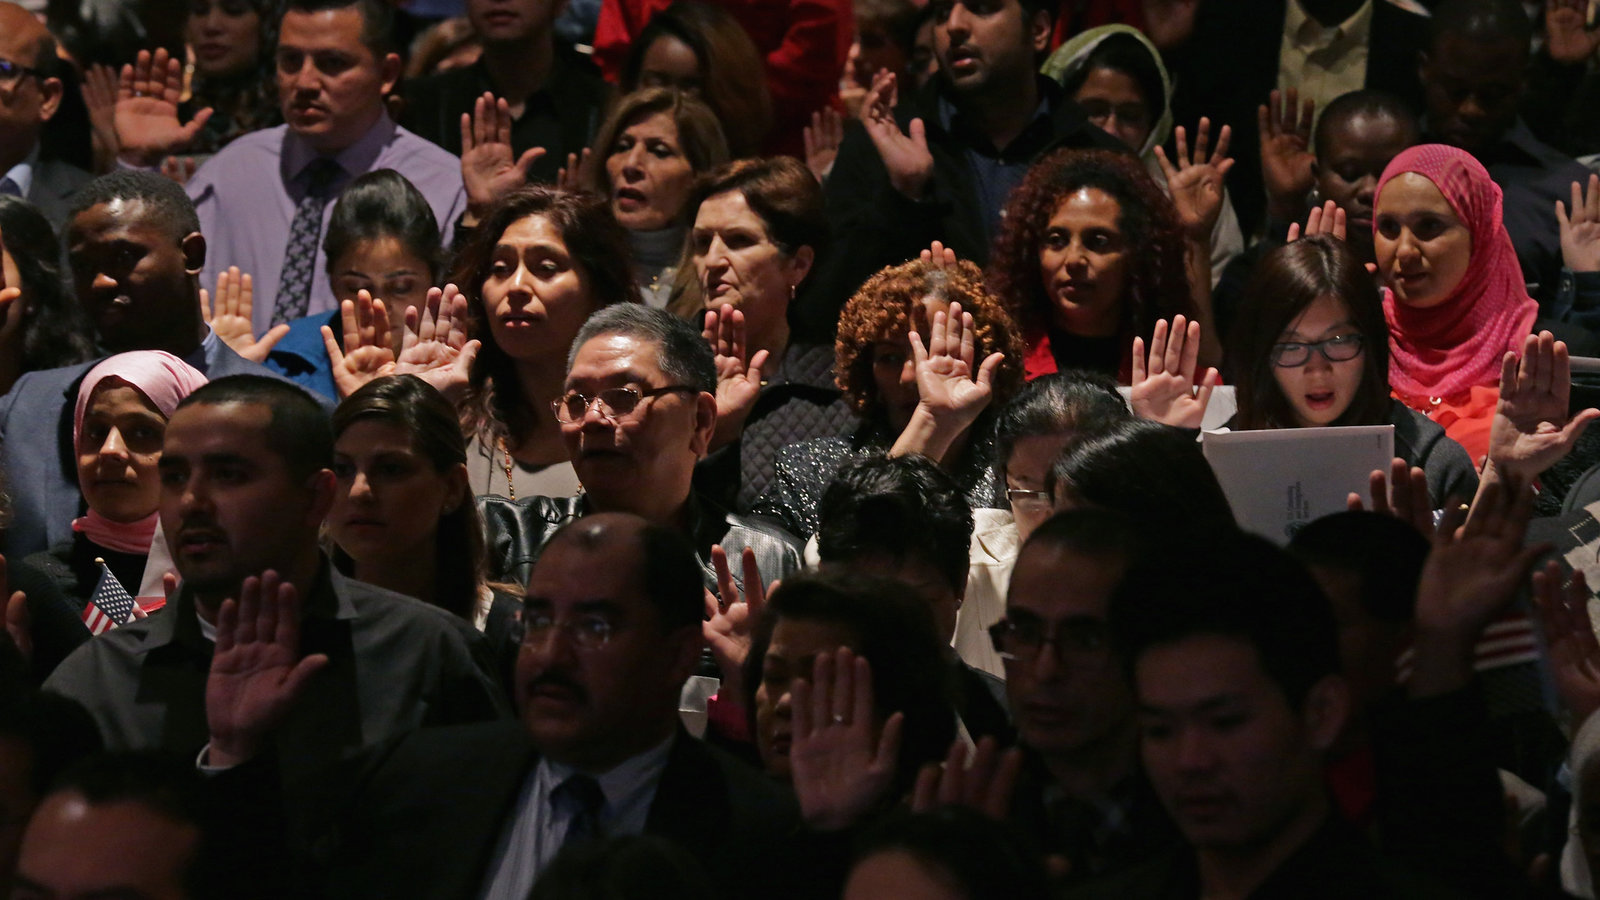 Immigrants Aren T Taking Americans Jobs New Study Finds